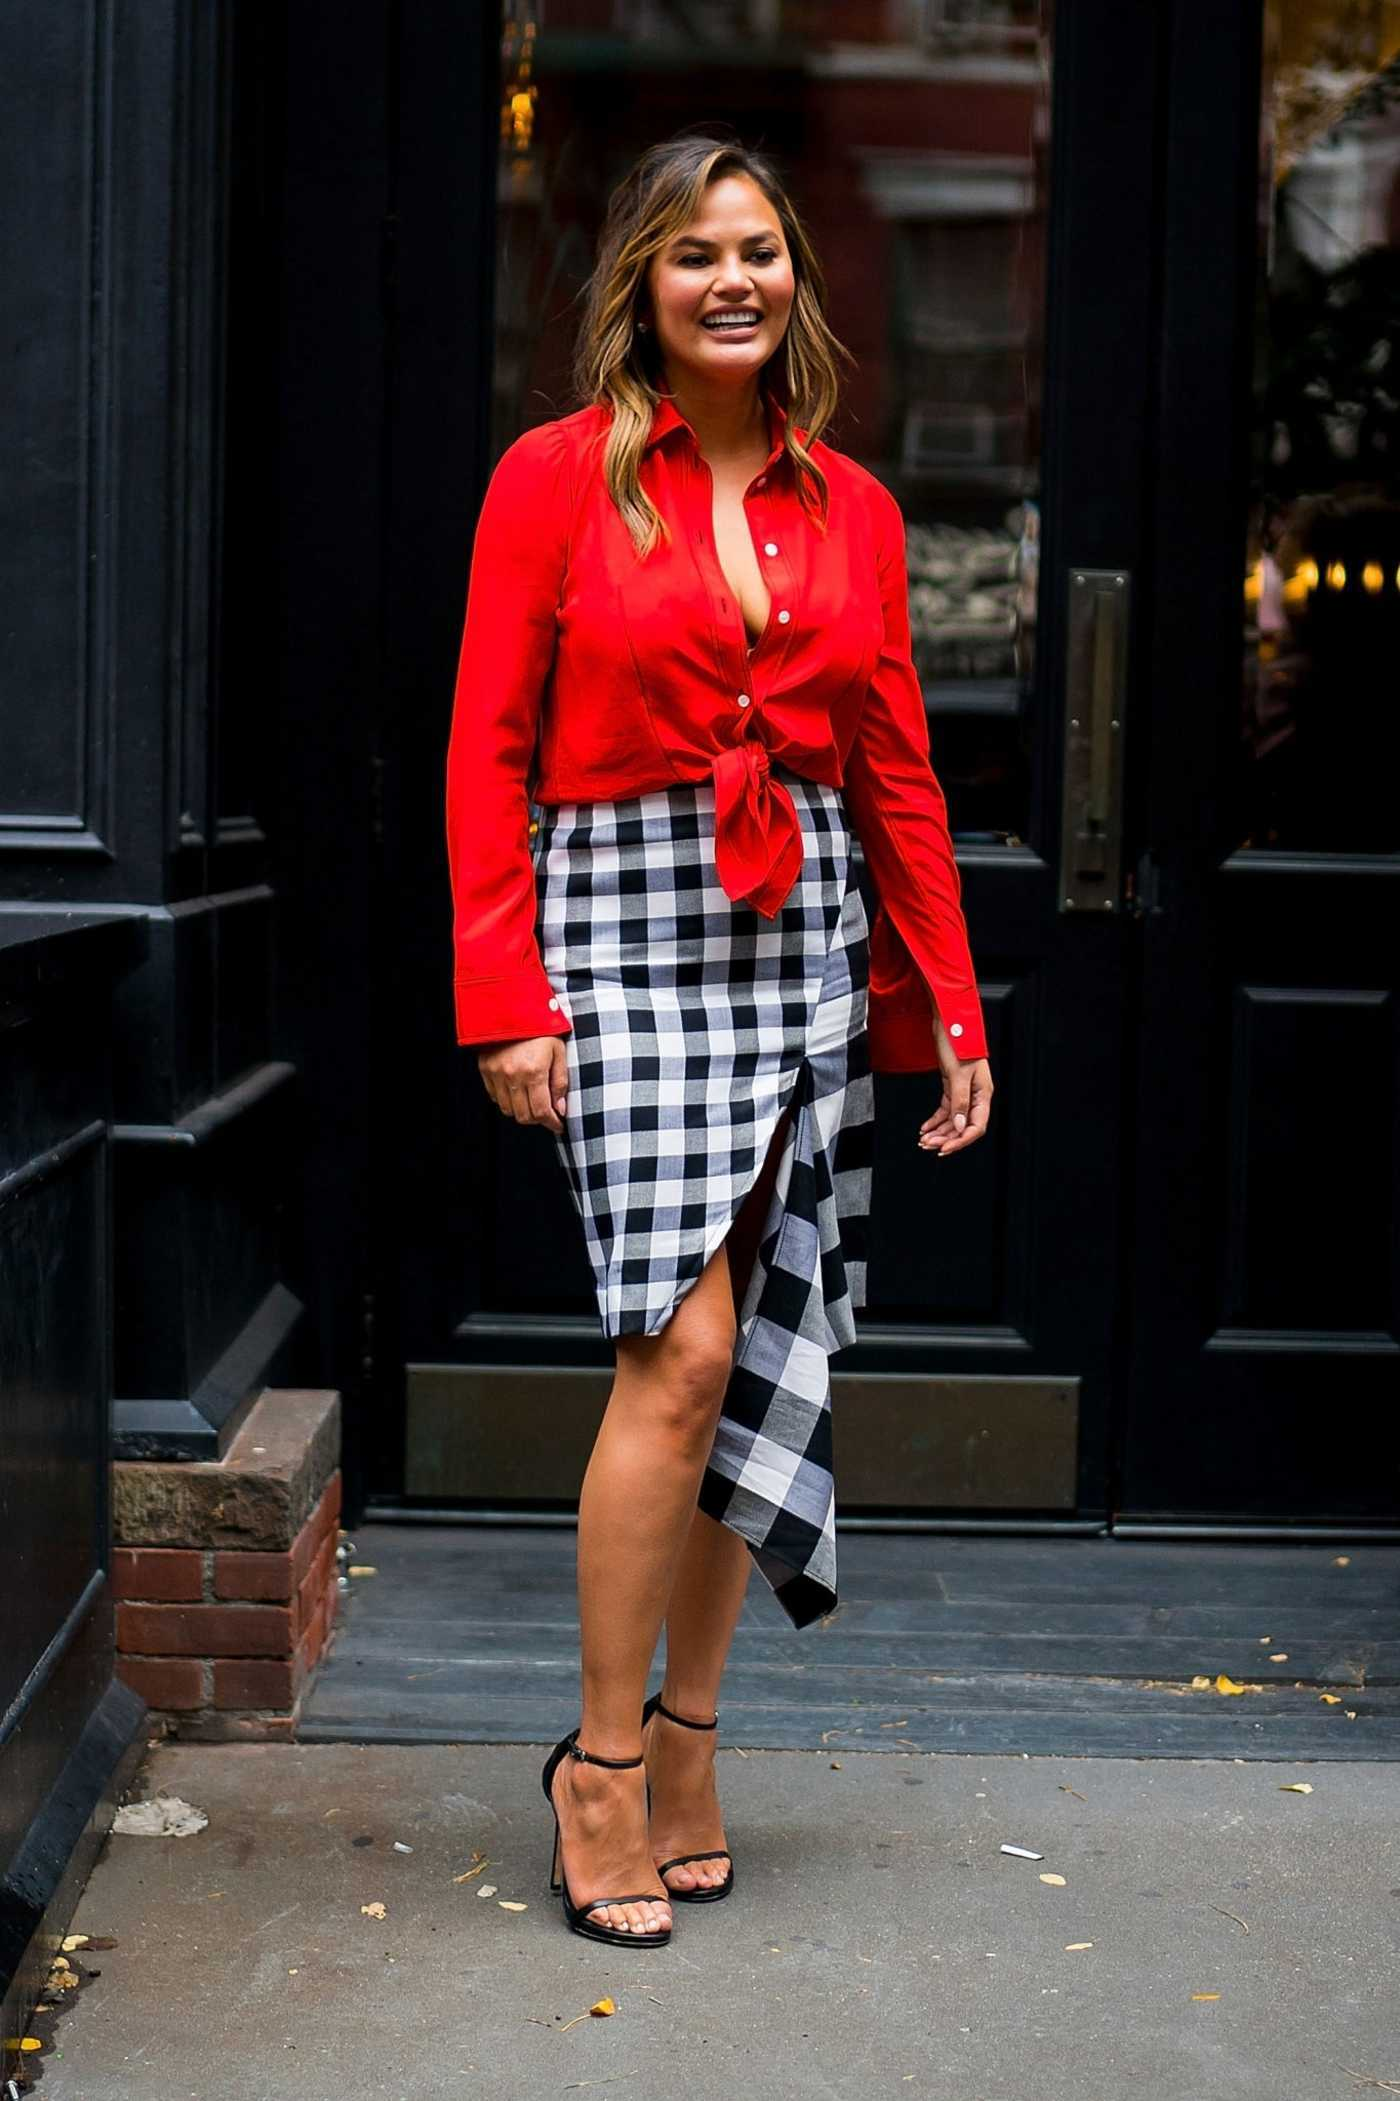 Chrissy Teigen in a Red Shirt Was Seen Out in New York City 10/13/2018